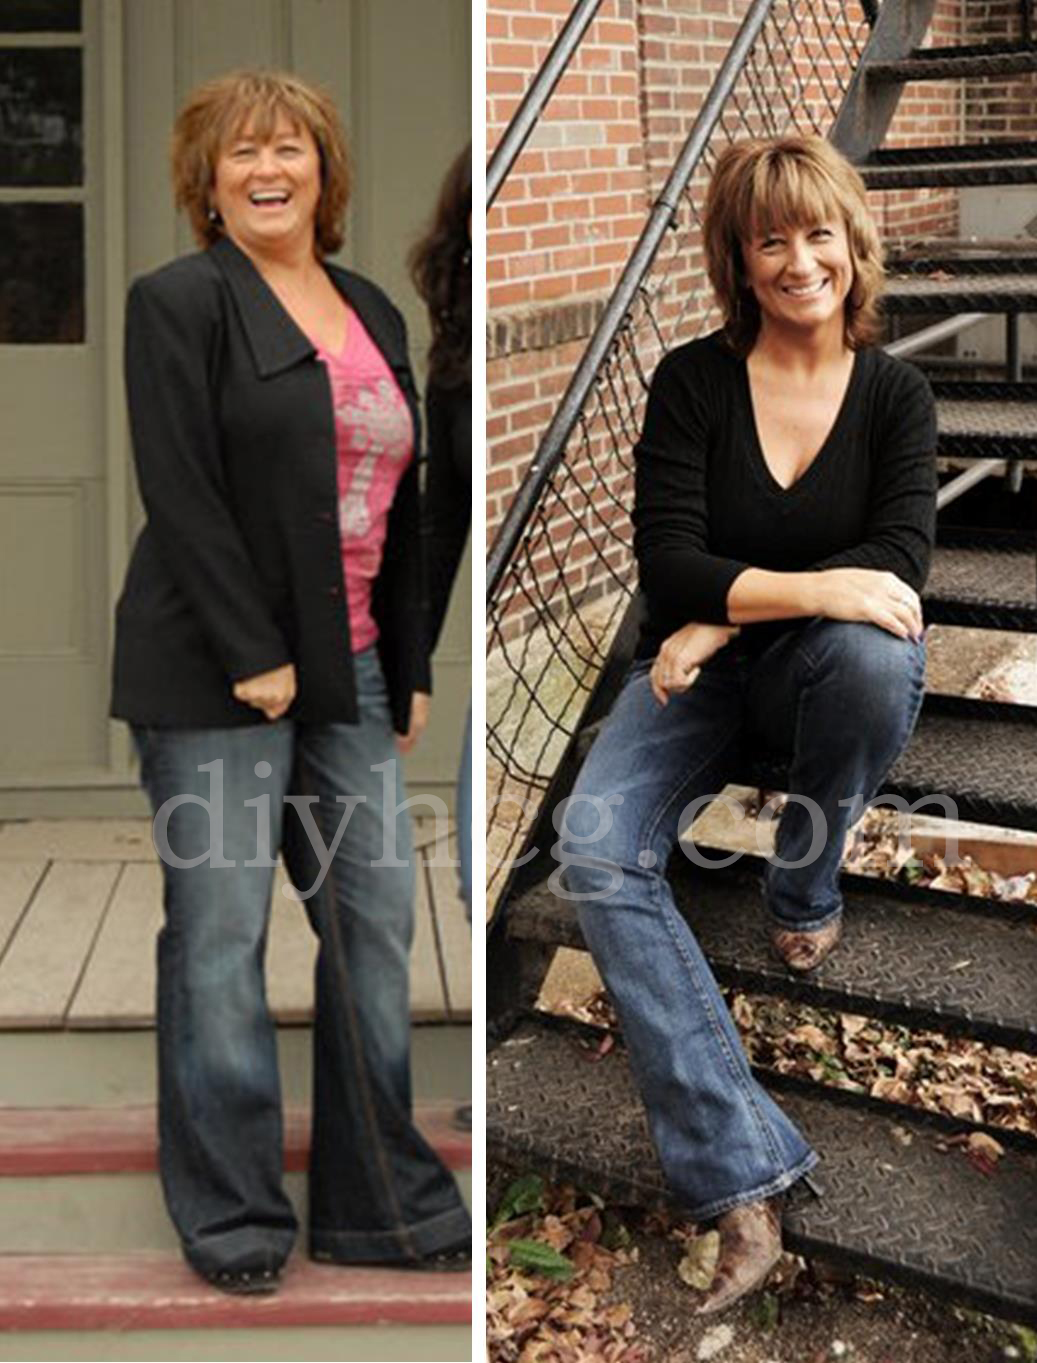 HCG Success Story Pictures - Becky J - Do-It-Yourself HCG ...